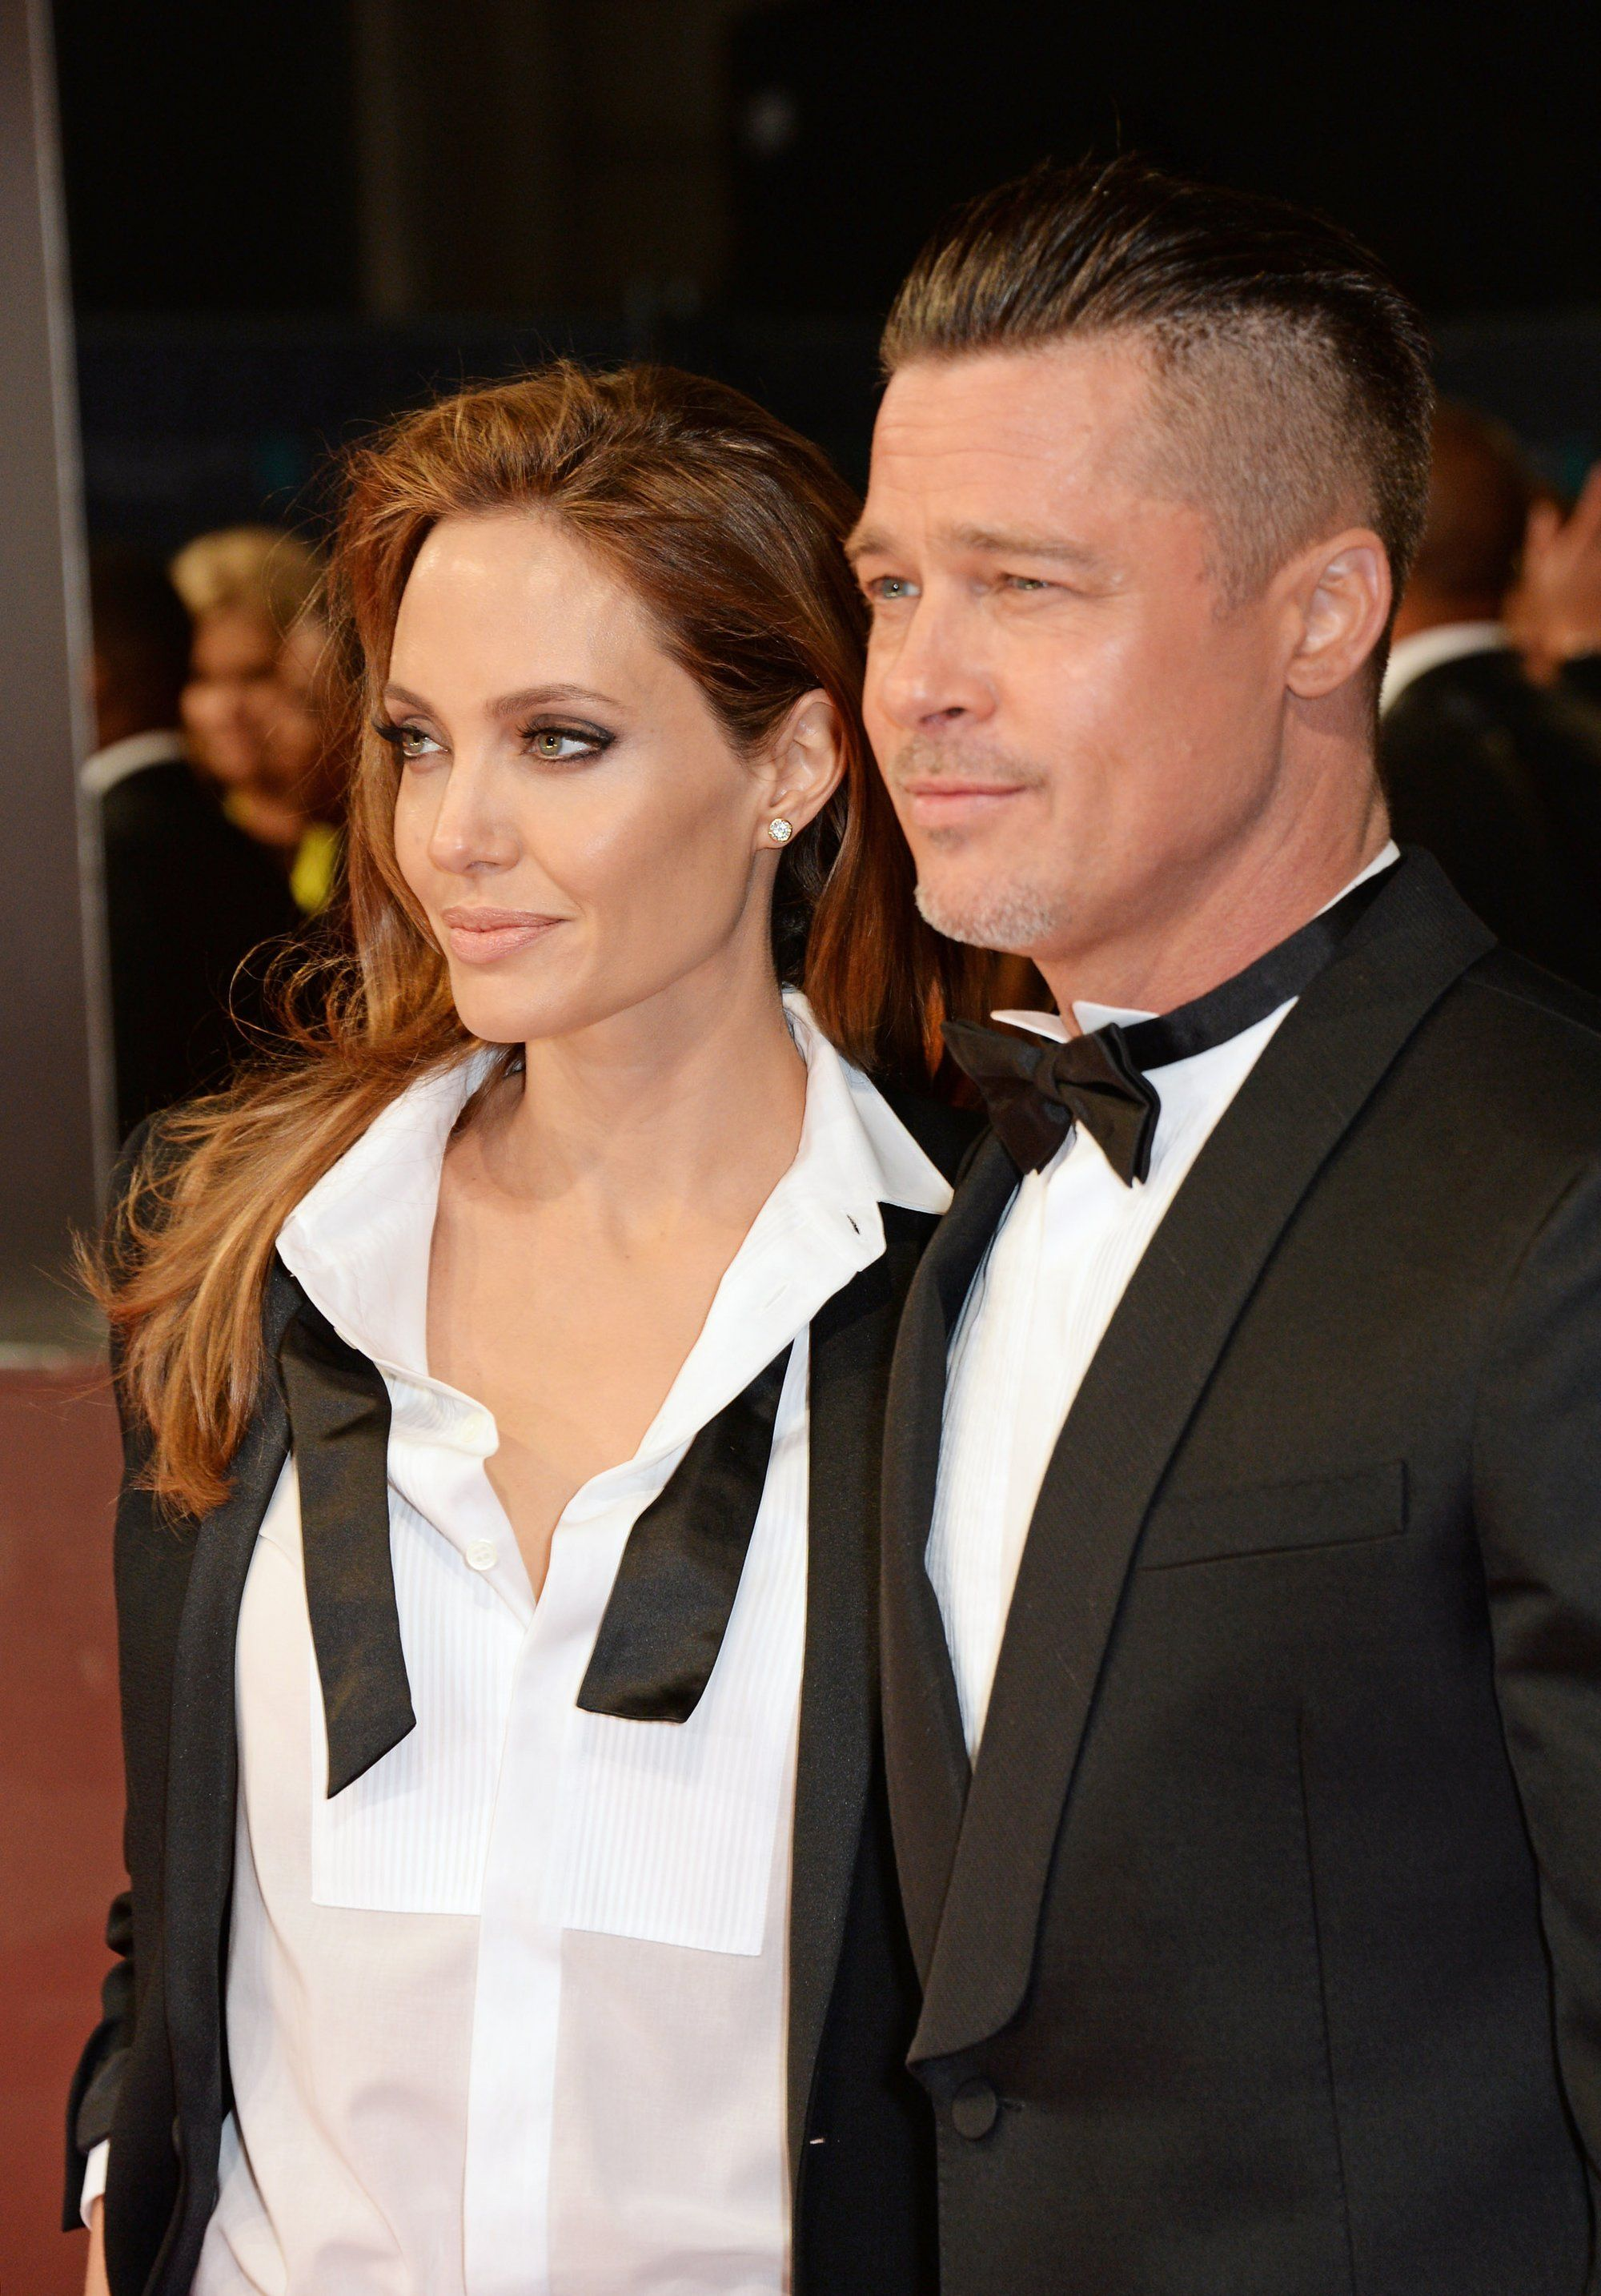 Angelina Jolie and Brad Pitt - They've been together for years and have six children together, but they only recently tied the knot, in 2014. (She wore an Atelier Versace dress that was embroidered with designs drawn by the kids.) Aside from their acting careers, Jolie and Pitt are on a mission to save the world through their involvement in an impressive array of charities.